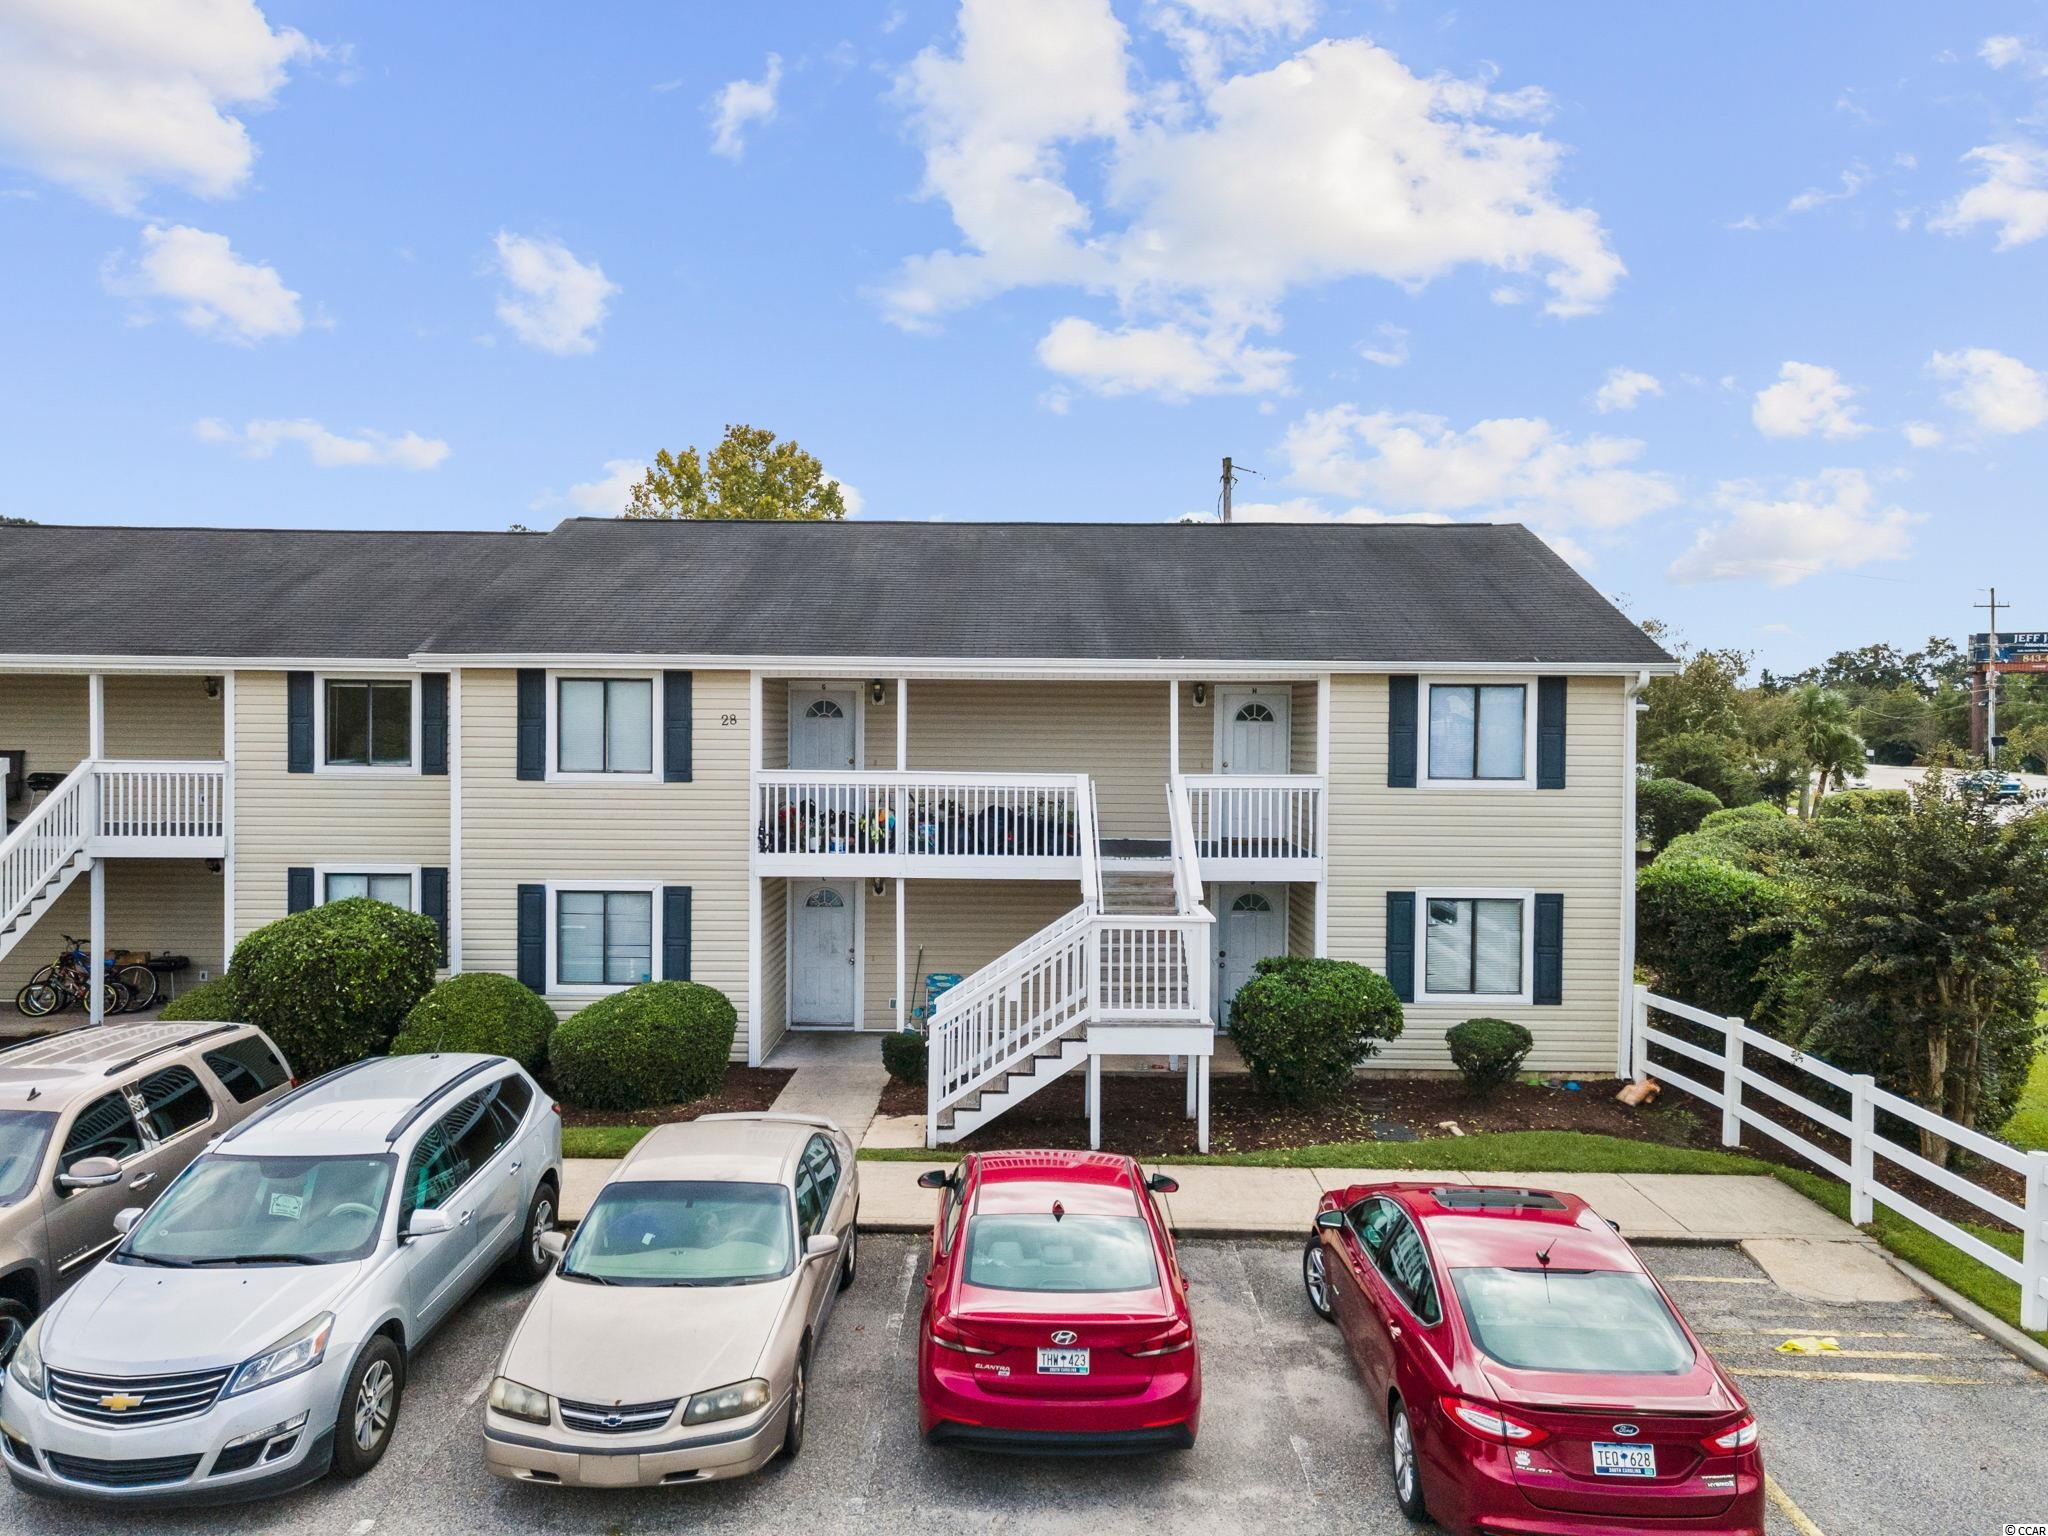 Move-in Ready! Excellent investment opportunity to purchase this 2 bedroom 2 bath condo, close to Carolina Coastal University. Up-dated bathrooms. Sold as is & furnished. TV's do NOT convey. Complex offers a swimming pool and laundry mat and is priced to sell!